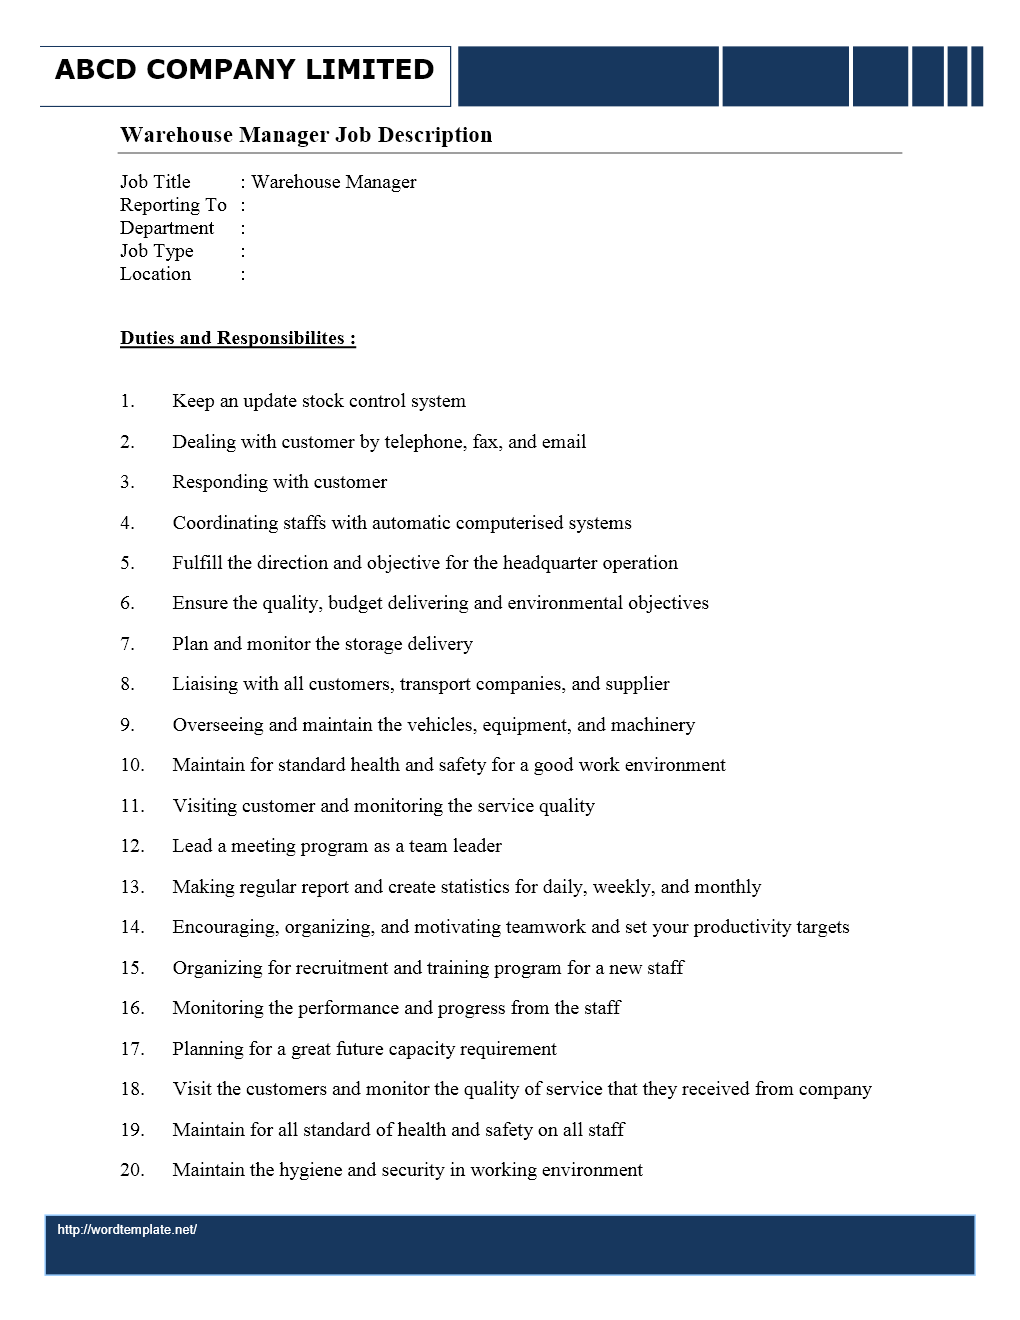 Job Description Word Templates Free Word Templates